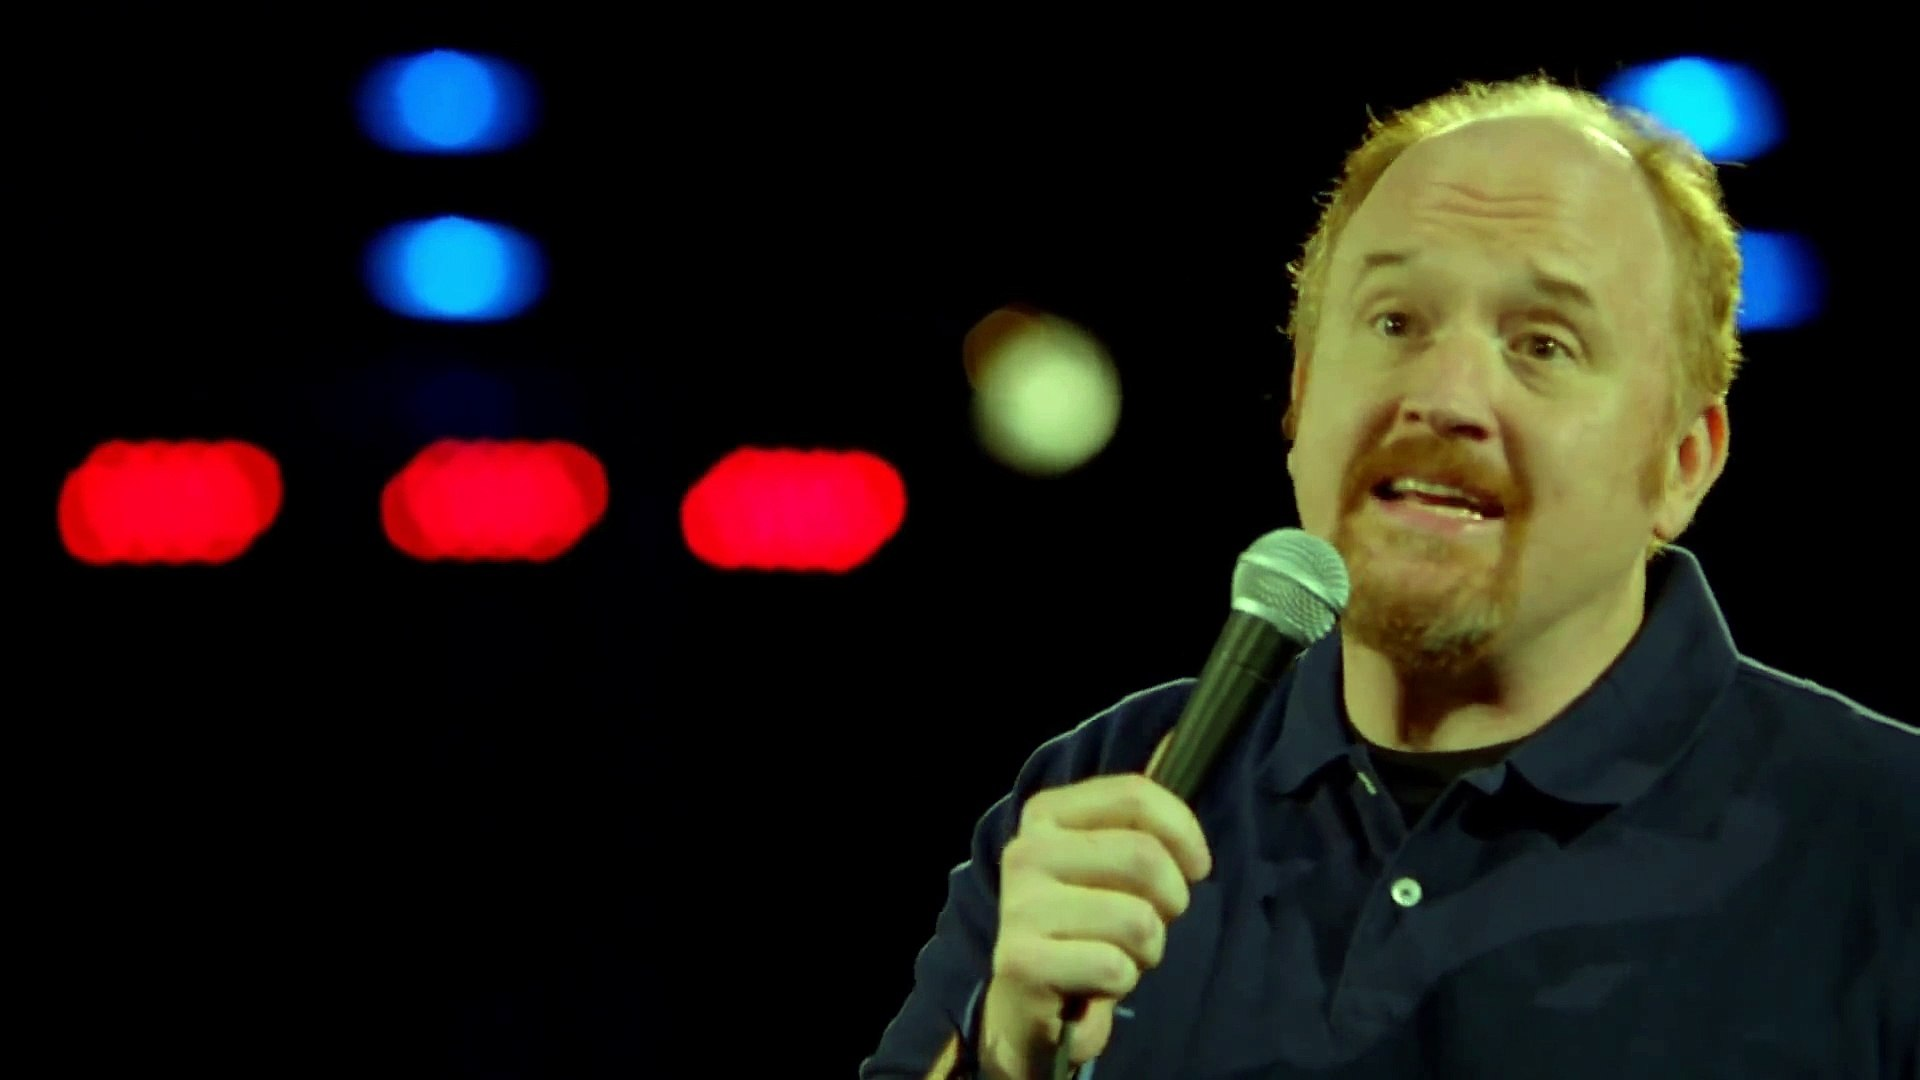 Louis C.K. - Pets and animals